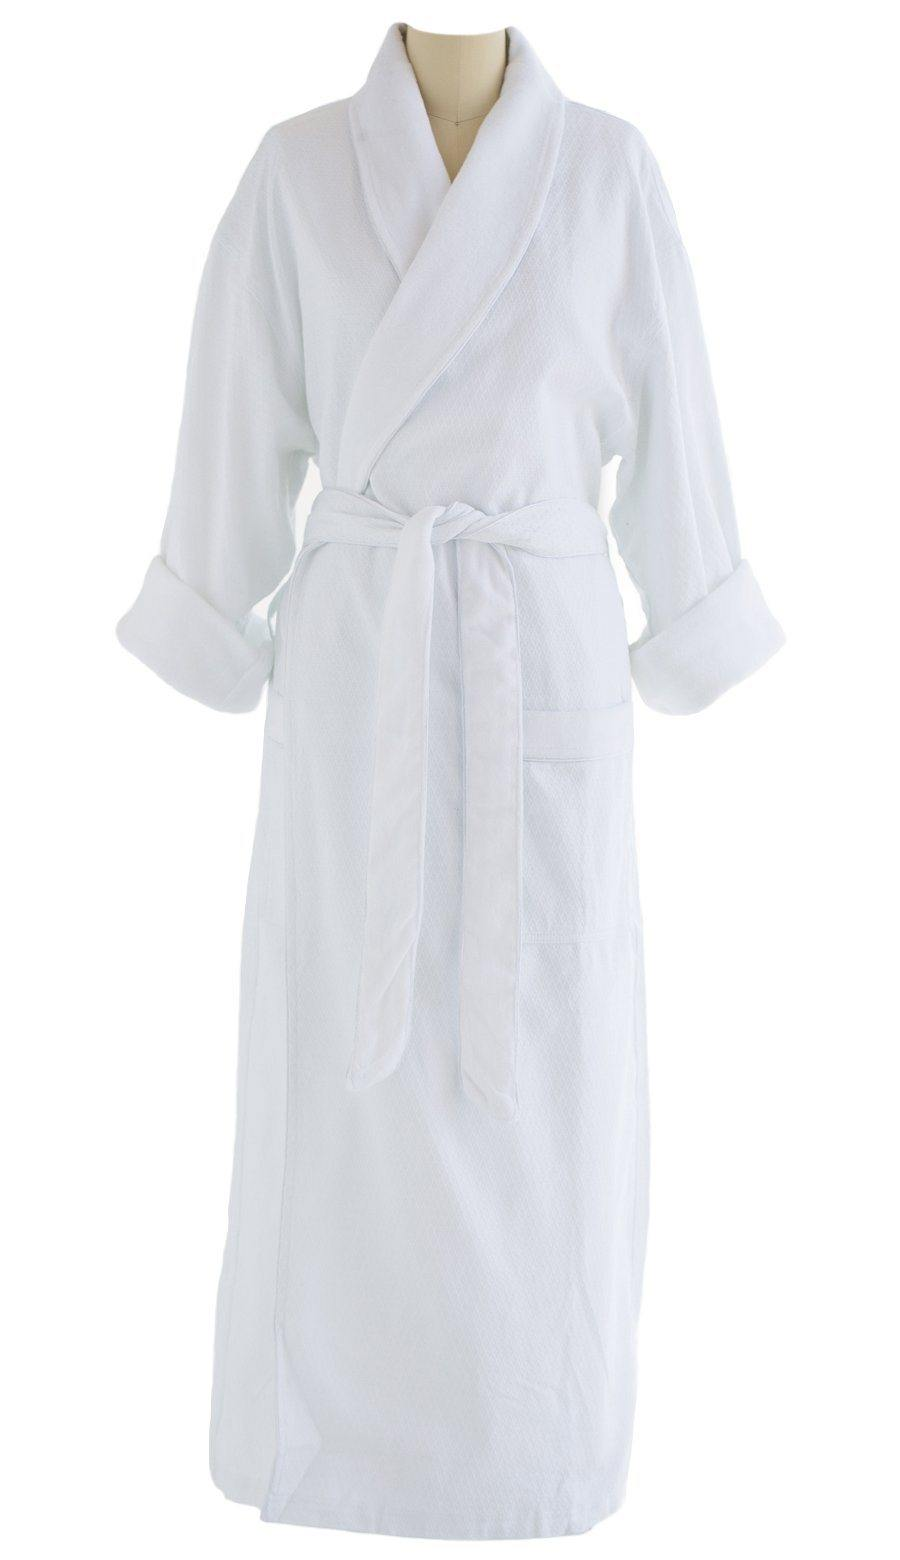 Diamond Jacquard  Shawl Design Robe | Style: DJT7000 - Luxury Hotel & Spa Robes by Chadsworth & Haig